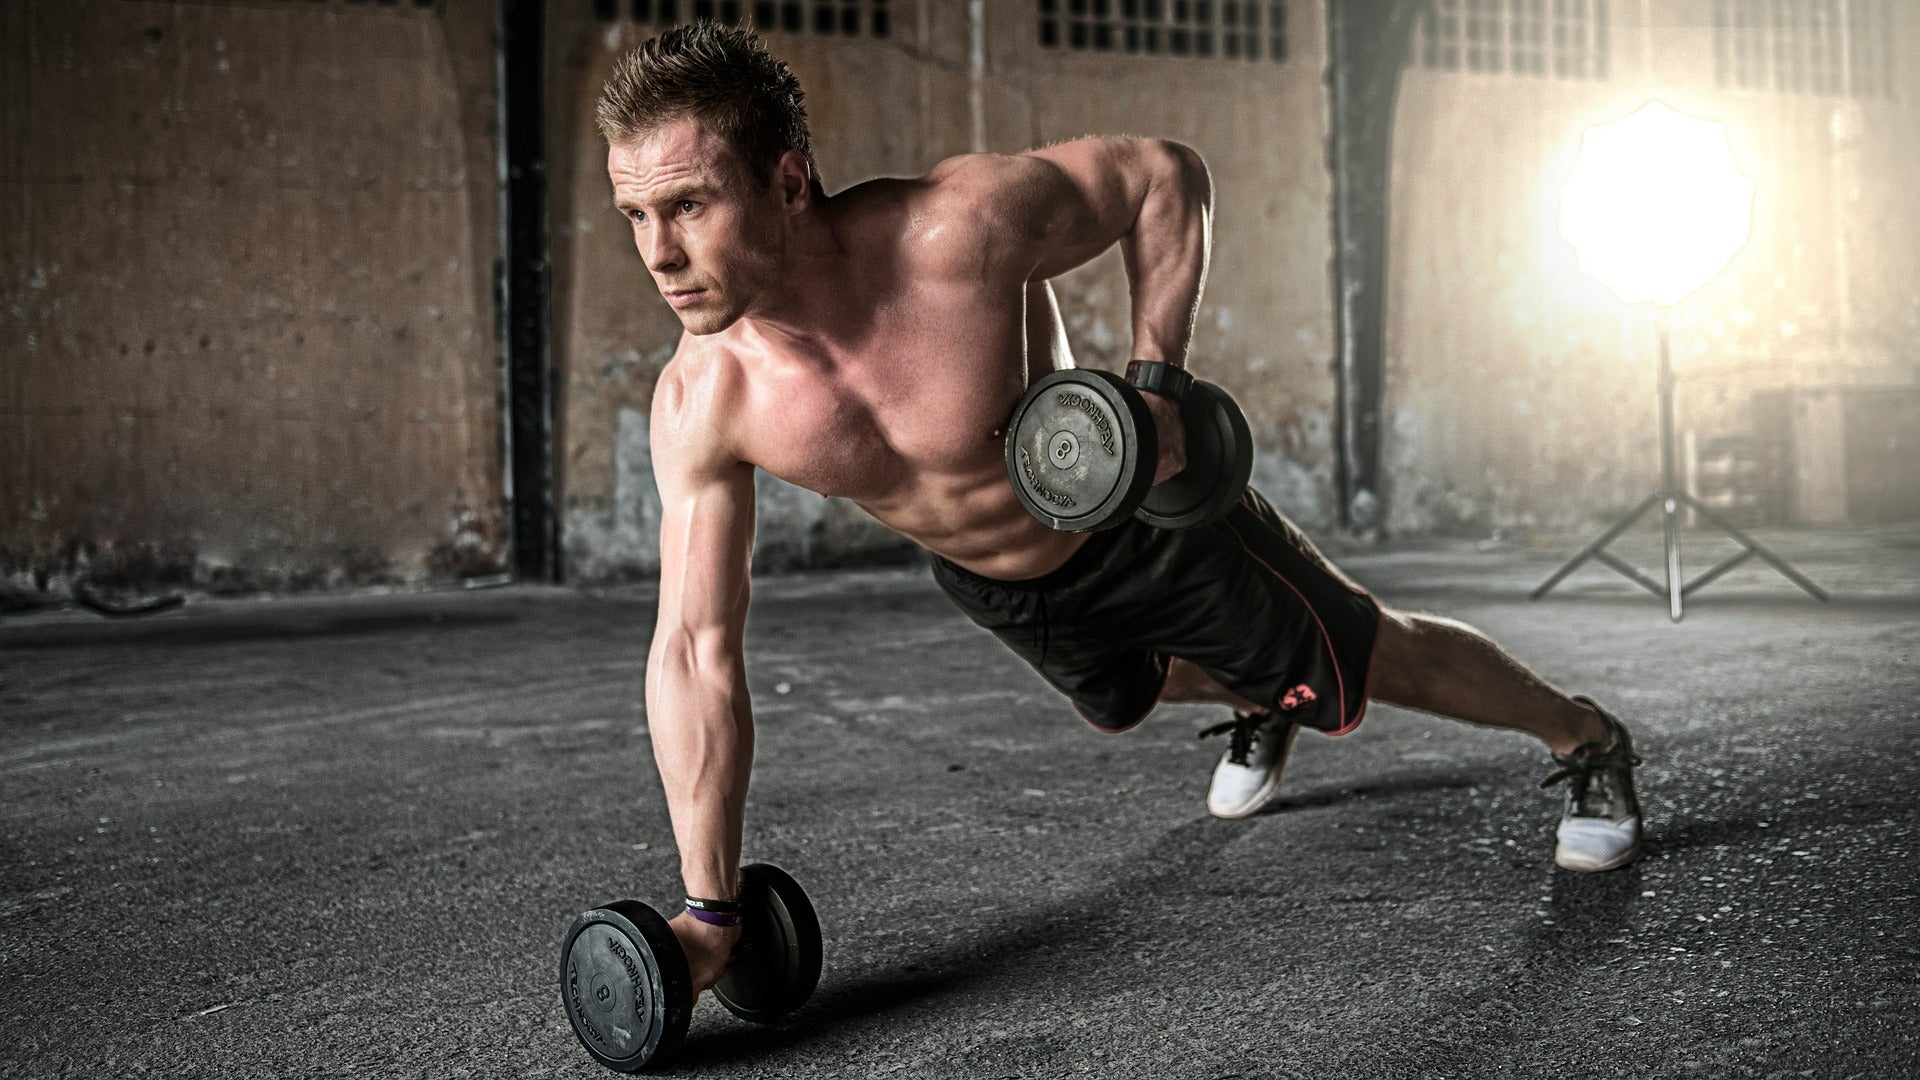 How Much Muscle Can You Gain in a Month? - InBody USA